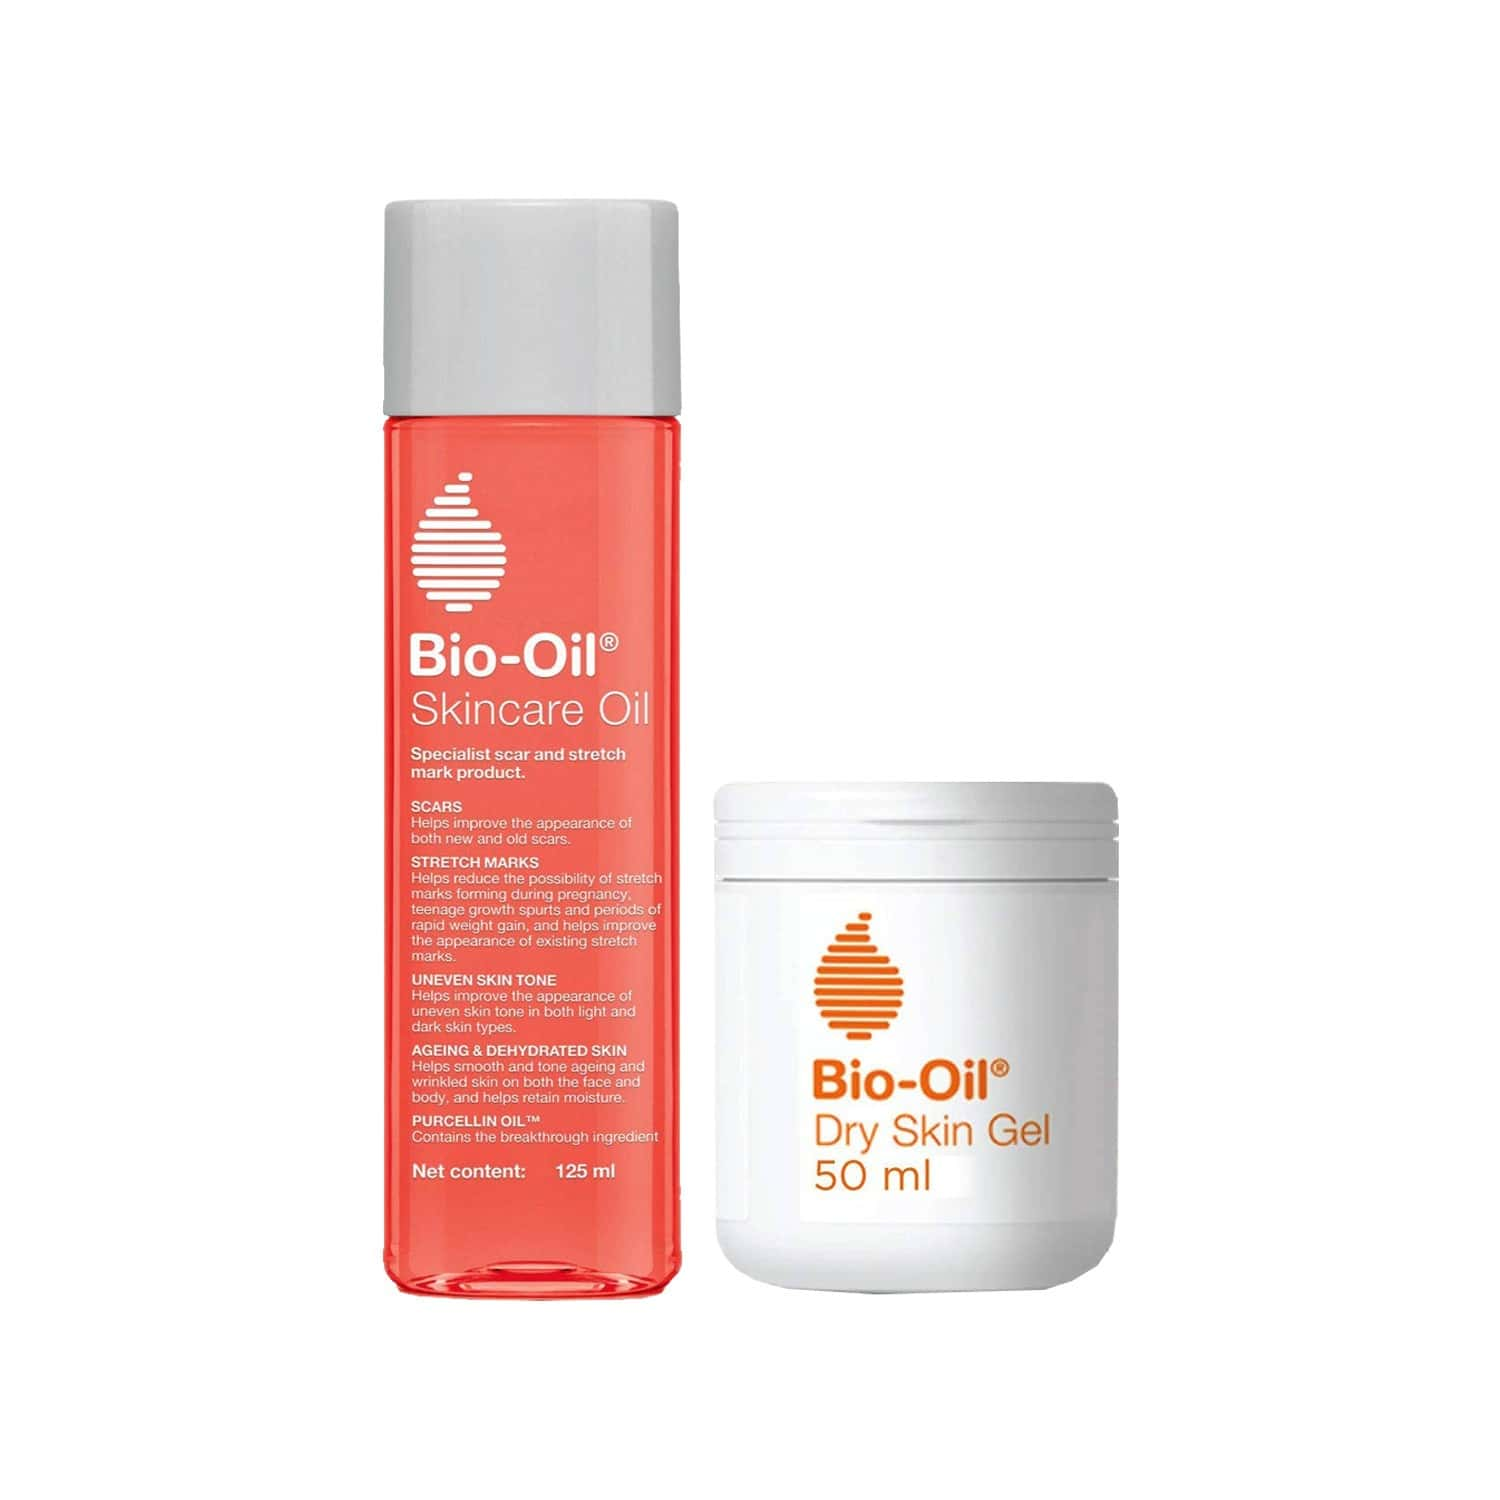 Bio-oil Skincare Oil (125 Ml) And Dry Skin Gel (50 Ml) Perfect Skin Combo For Moisturized, Flawless Skin - Face And Body